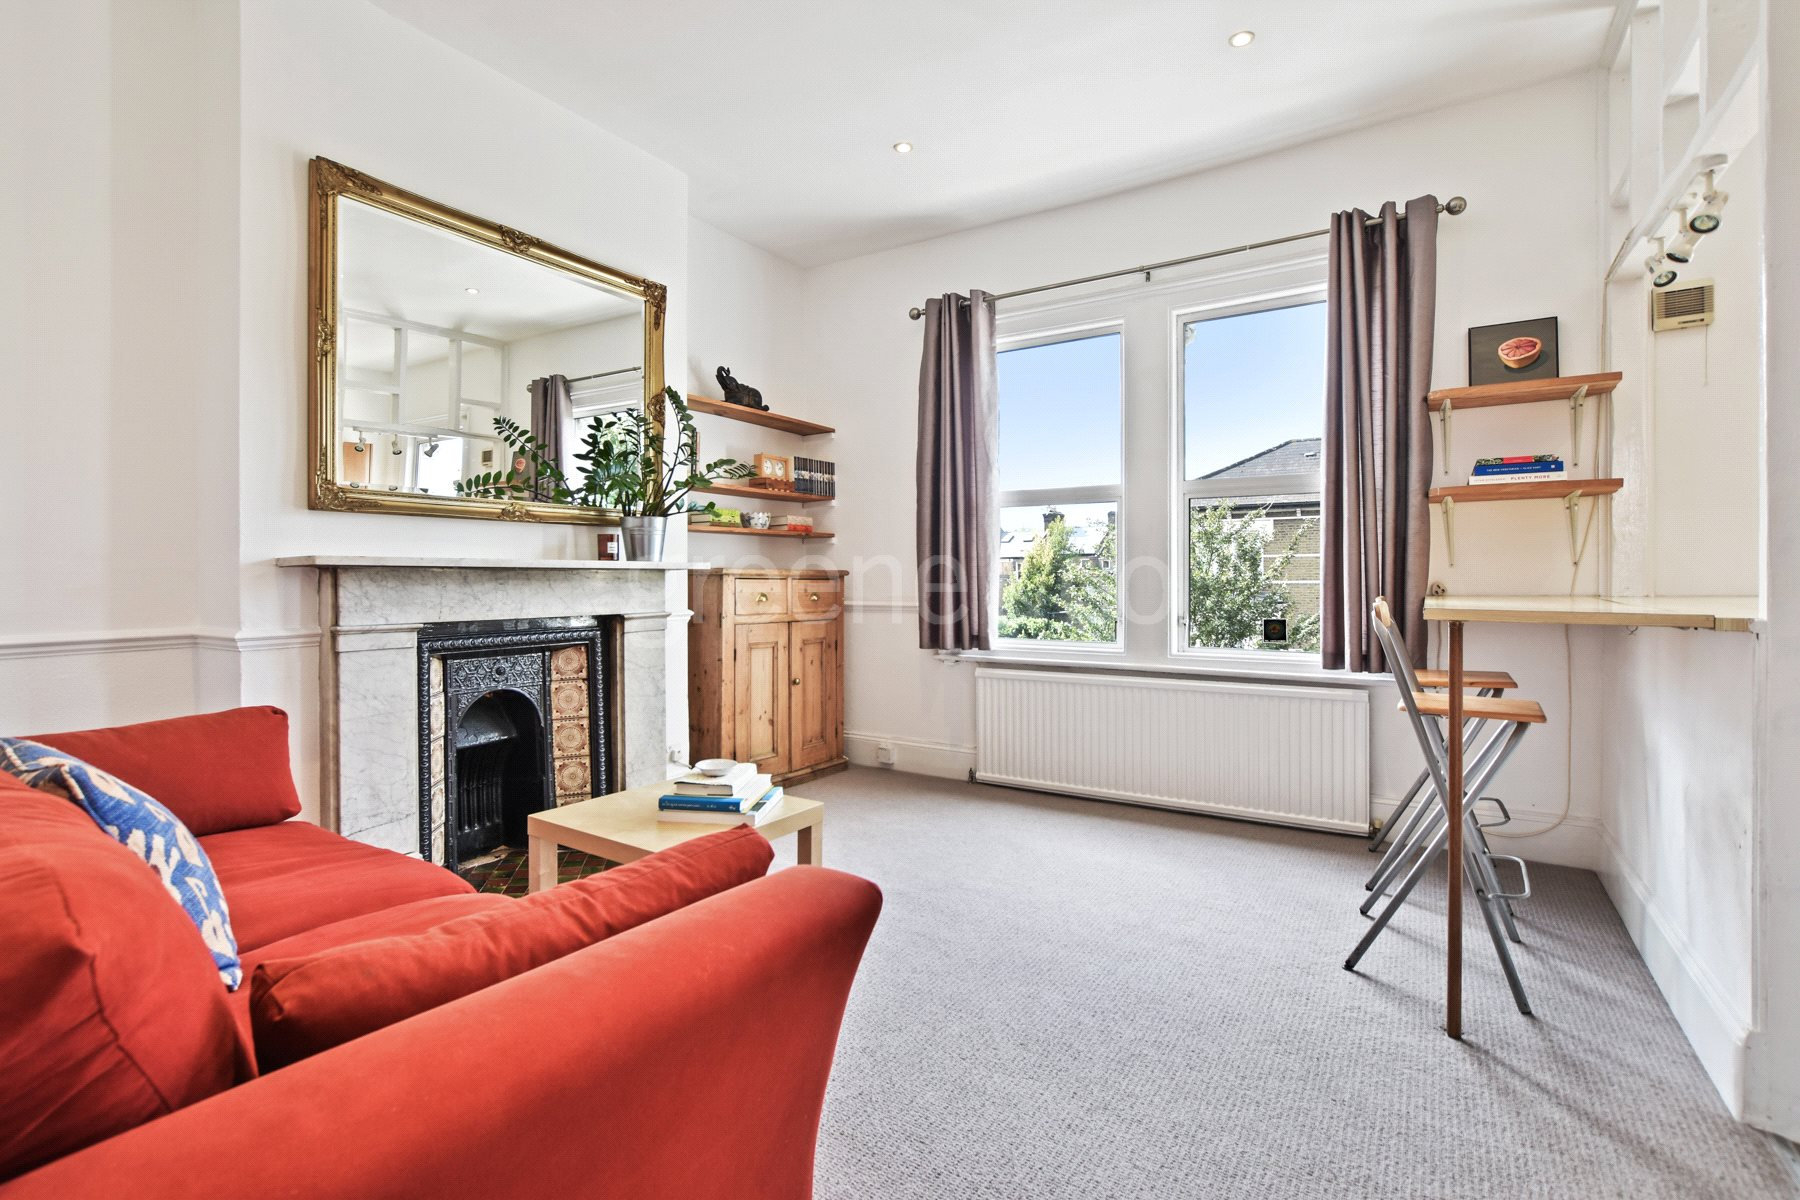 2 Bedrooms Flat for sale in Fernhead Road, Maida Vale, London, W9